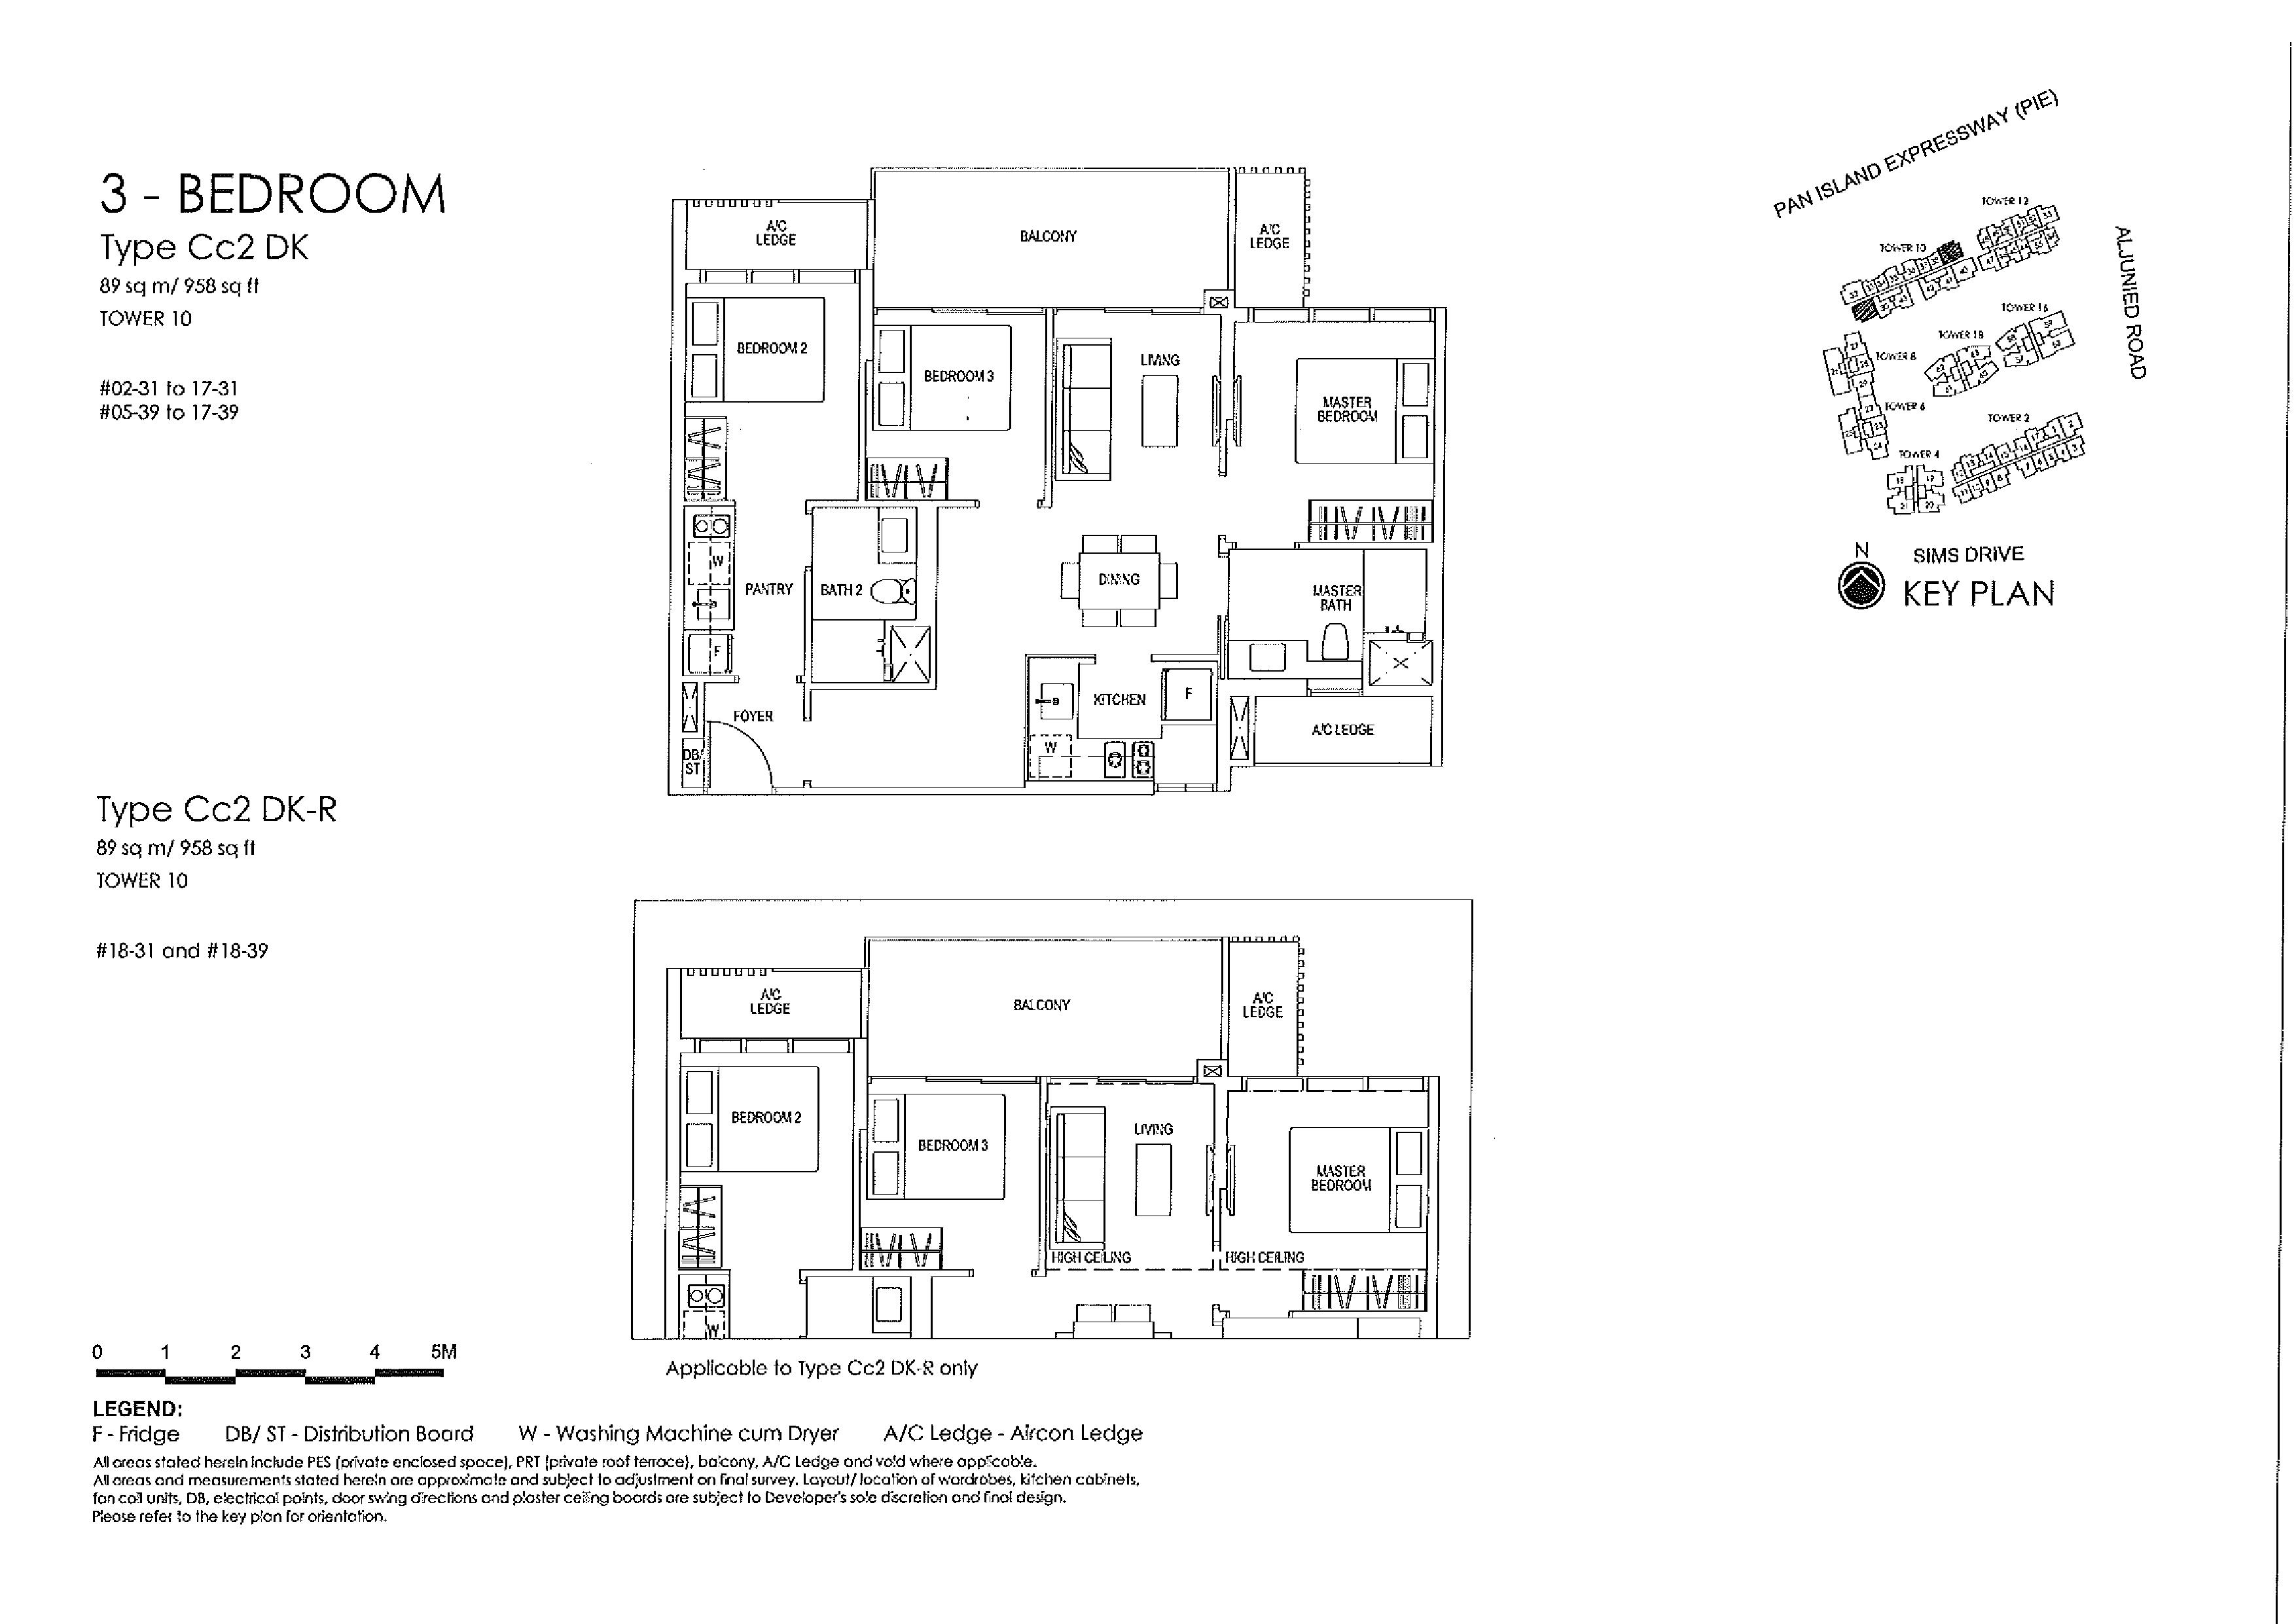 Sims Urban Oasis 3 Bedroom Type Cc2 DK, Cc2 DK-R Floor Plans